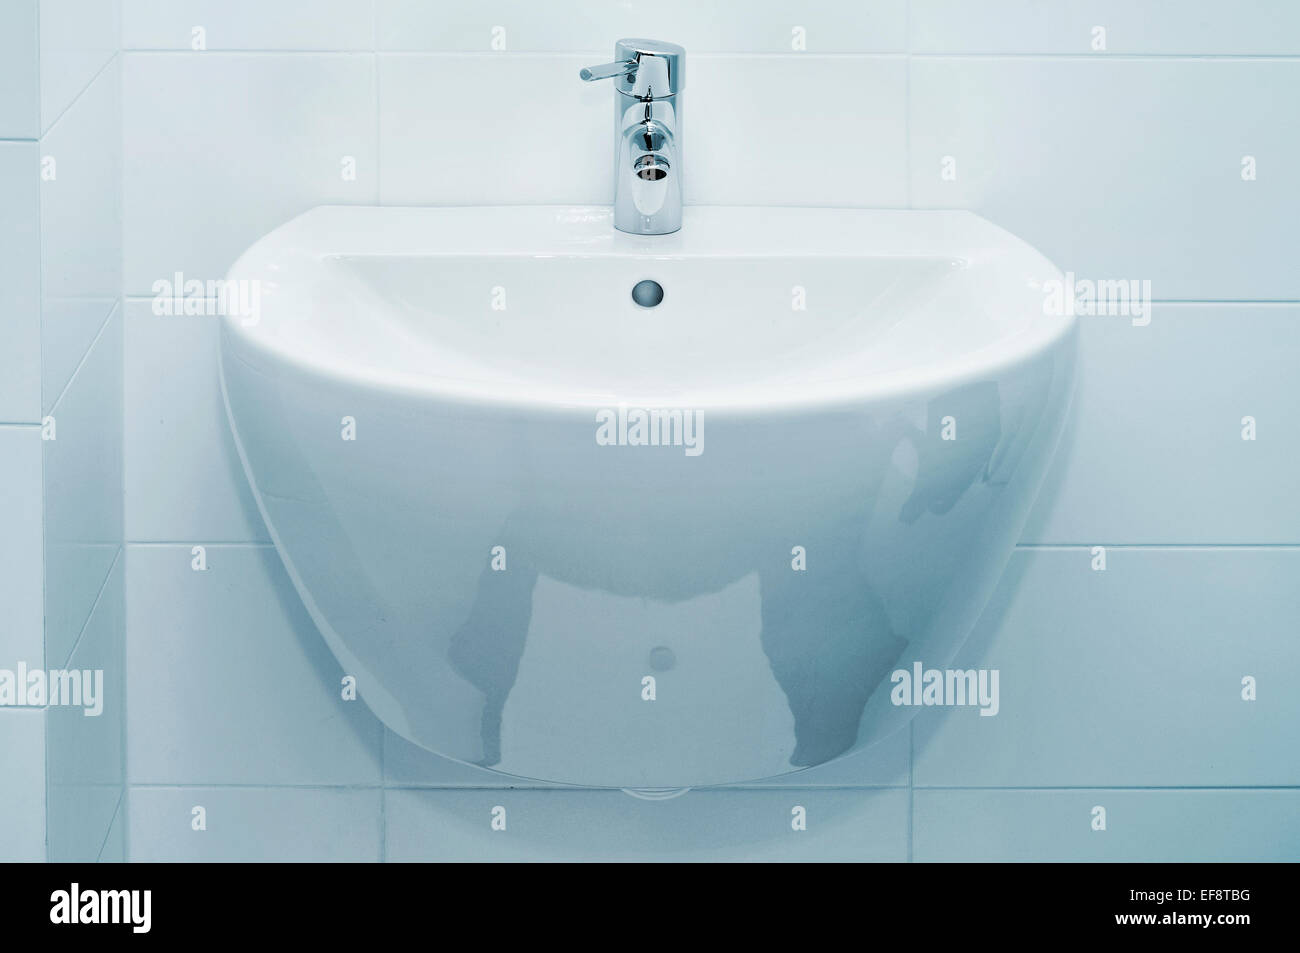 Sink Stockfotos & Sink Bilder - Alamy